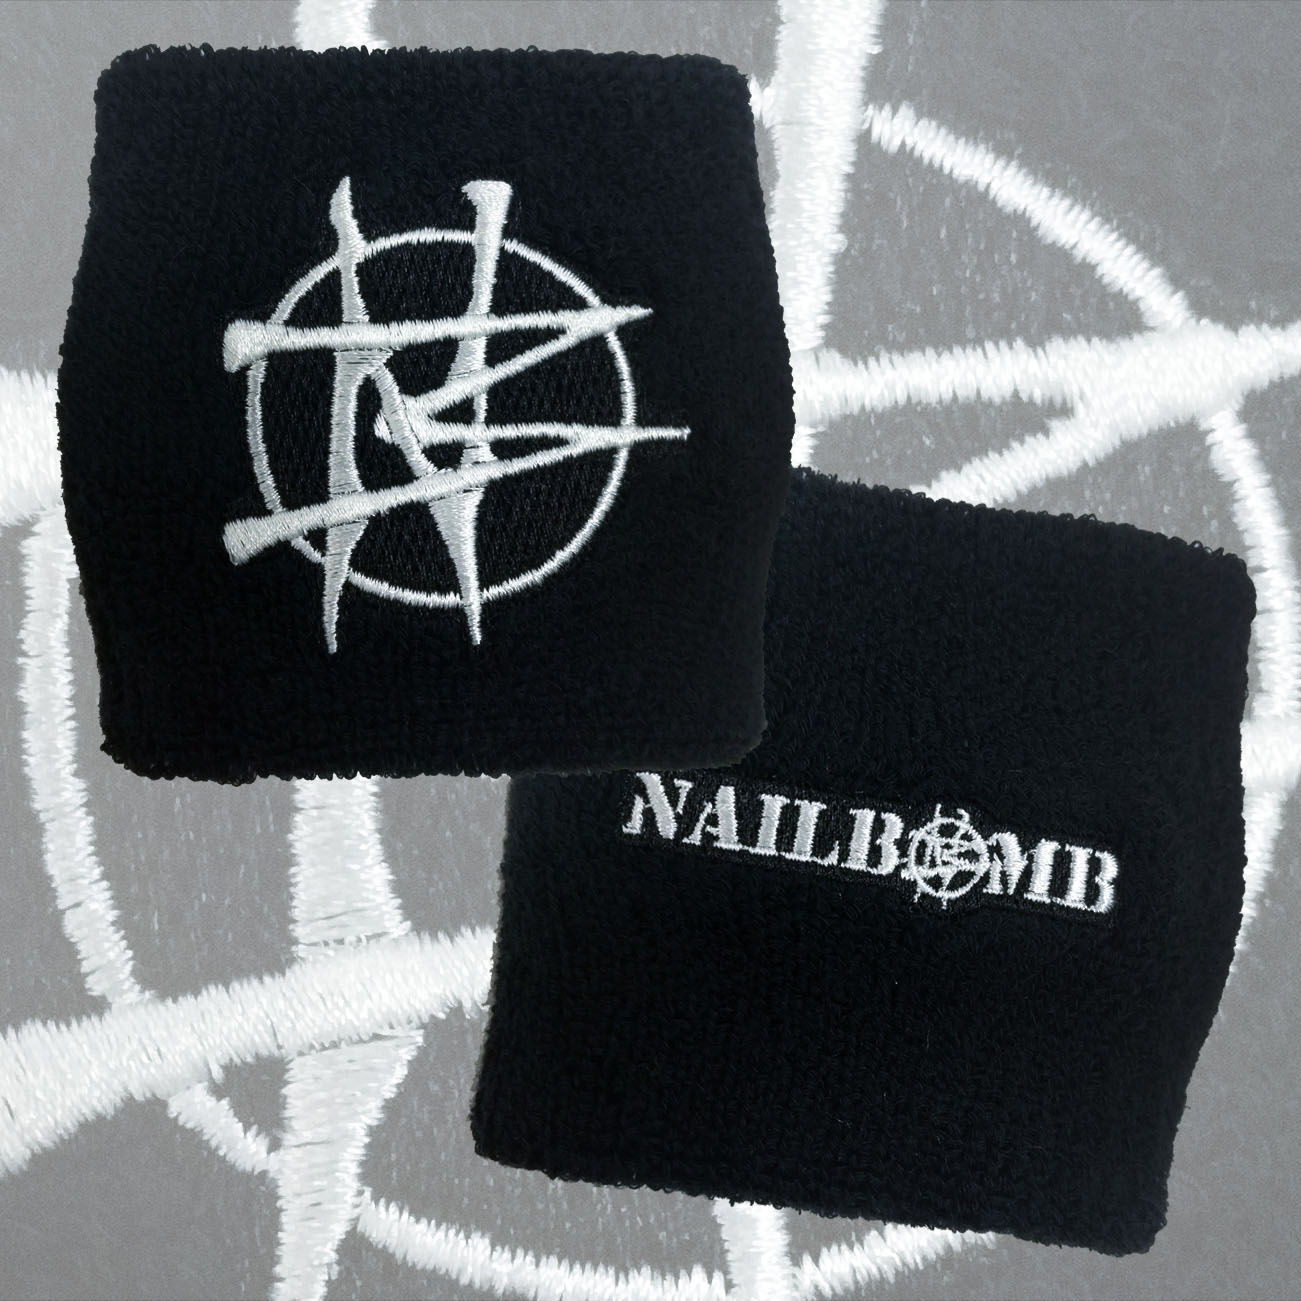 Nailbomb - 'Logo' Double Sided Wristband - Soulfly